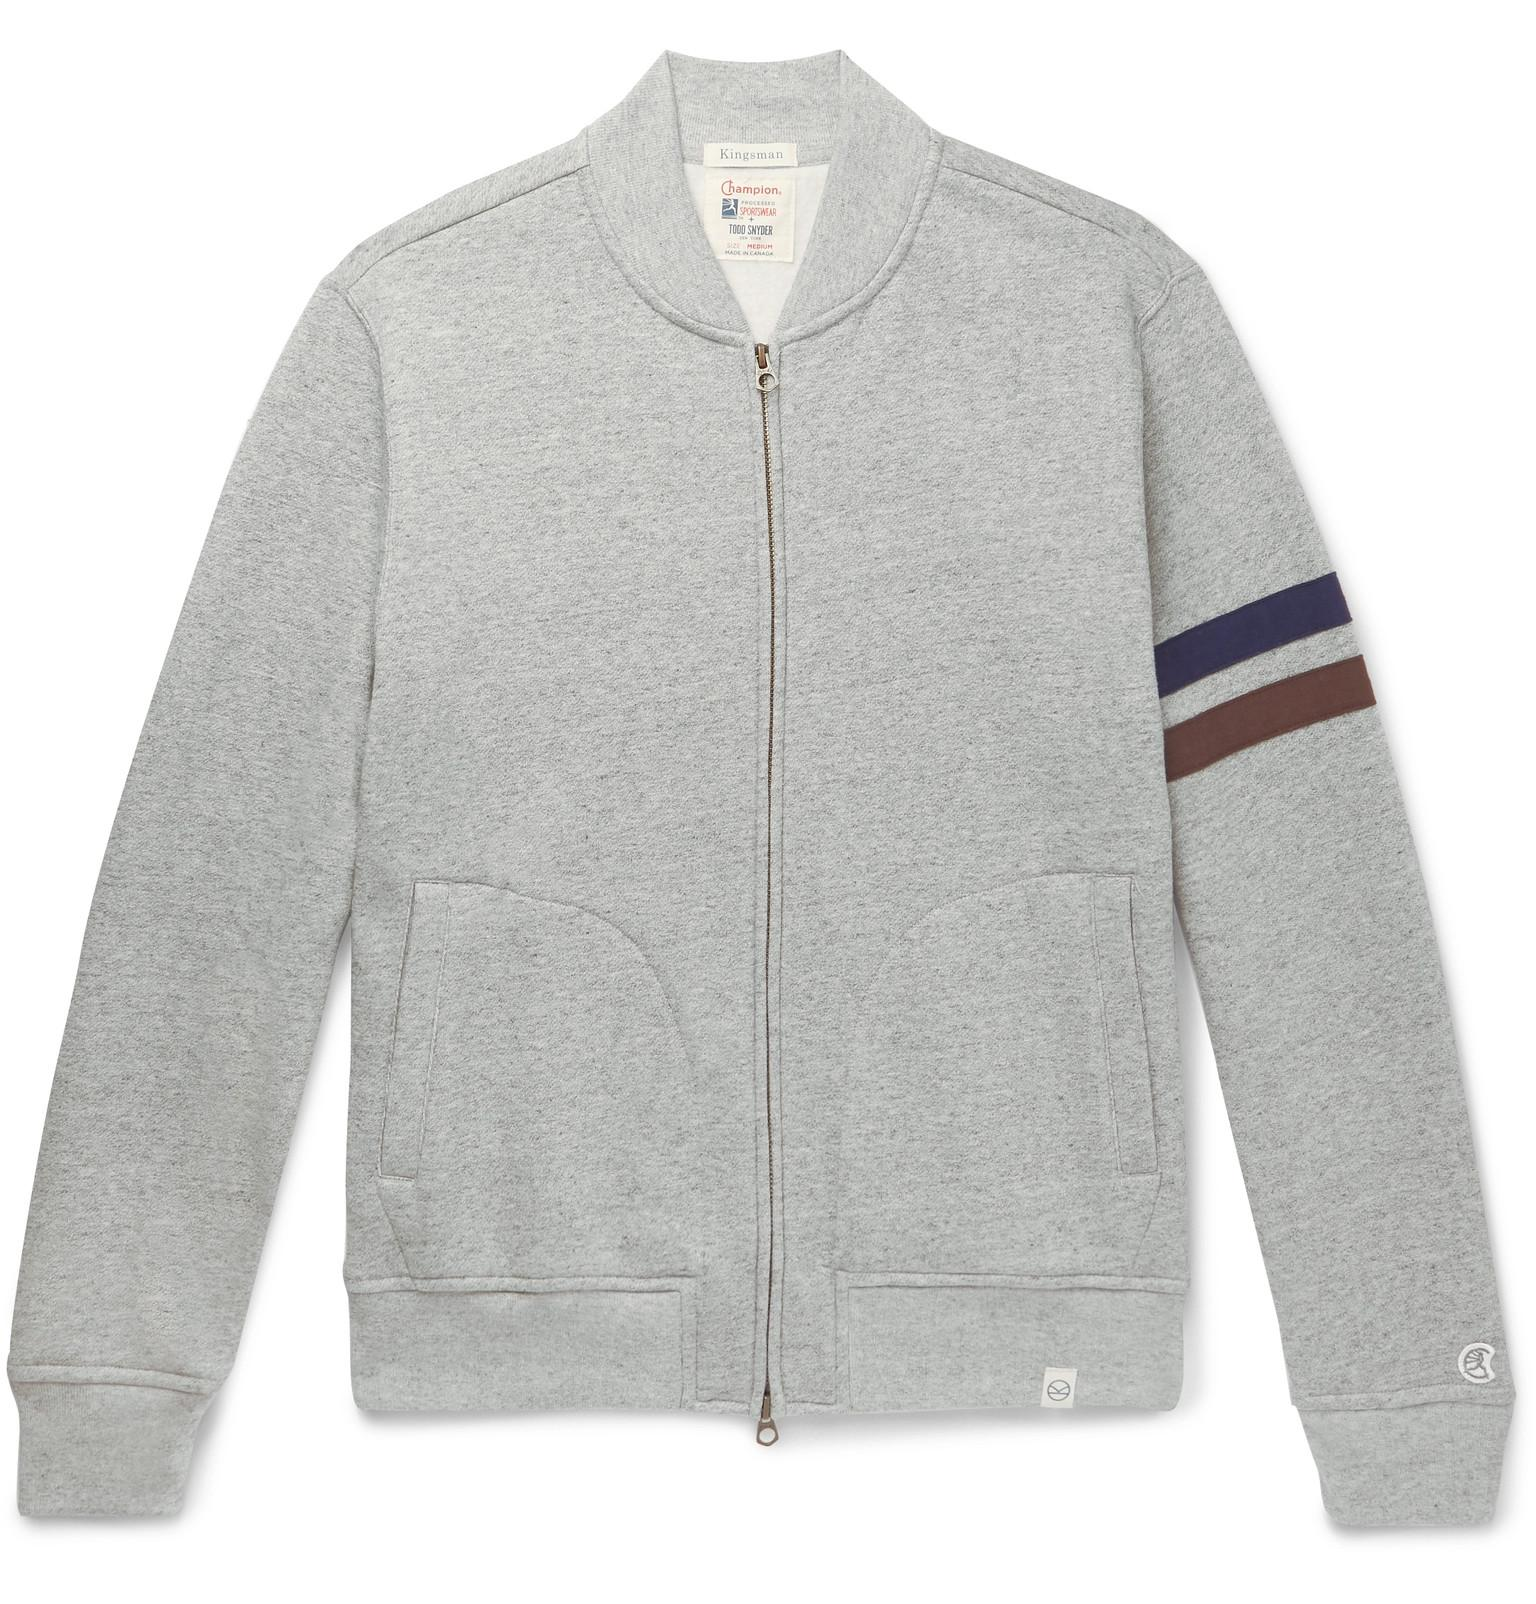 look good shoes sale new images of outlet store sale + Todd Snyder + Champion Harry's Fleece-back Cotton-blend Jersey Zip-up  Sweatshirt